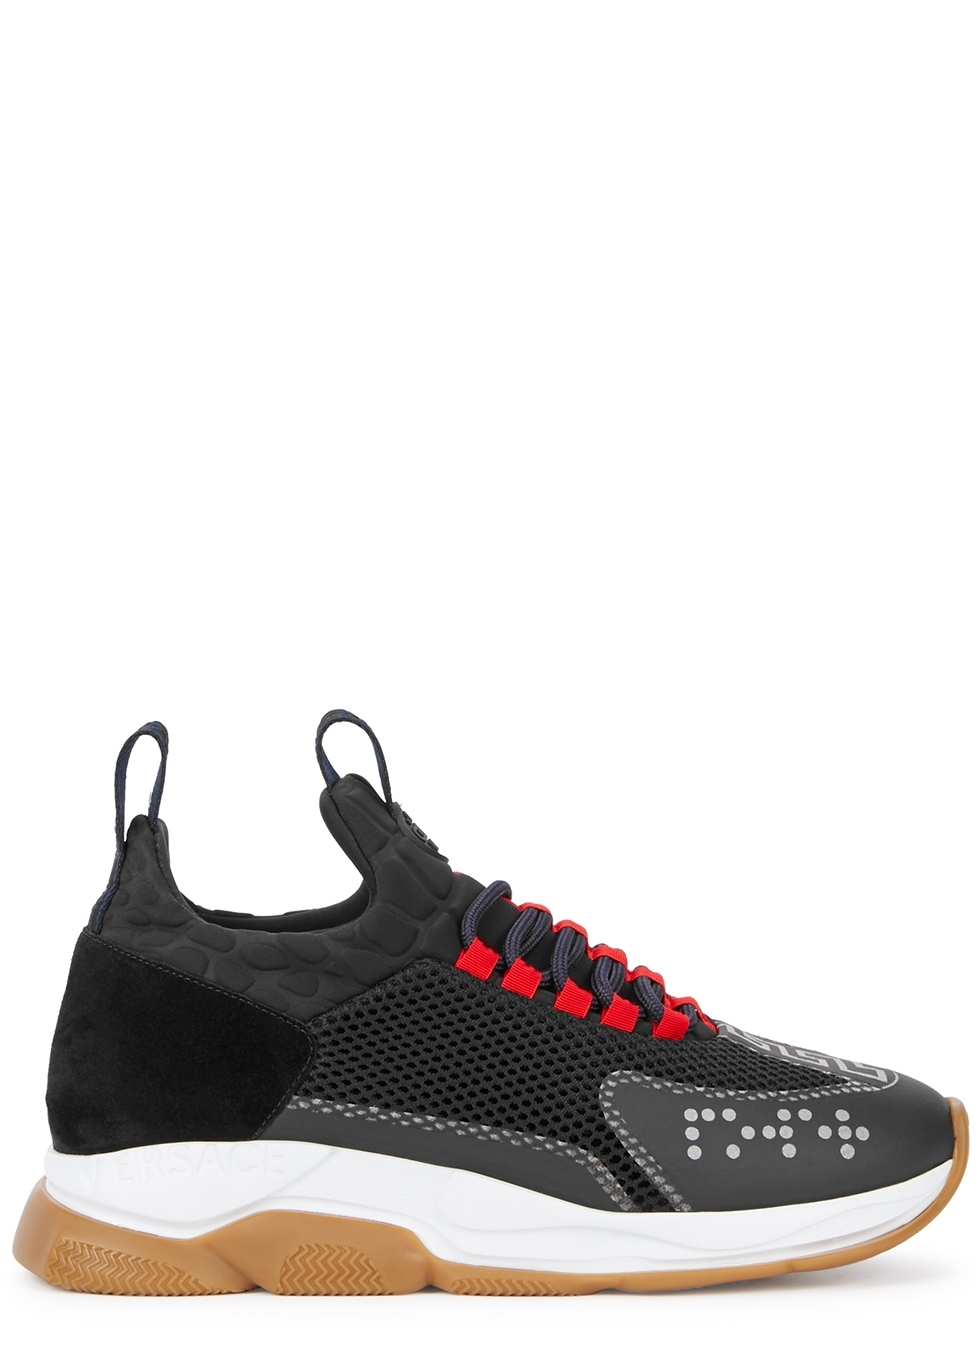 competitive price b9396 50390 Men s Designer Trainers, Sneakers   Sports Shoes - Harvey Nichols